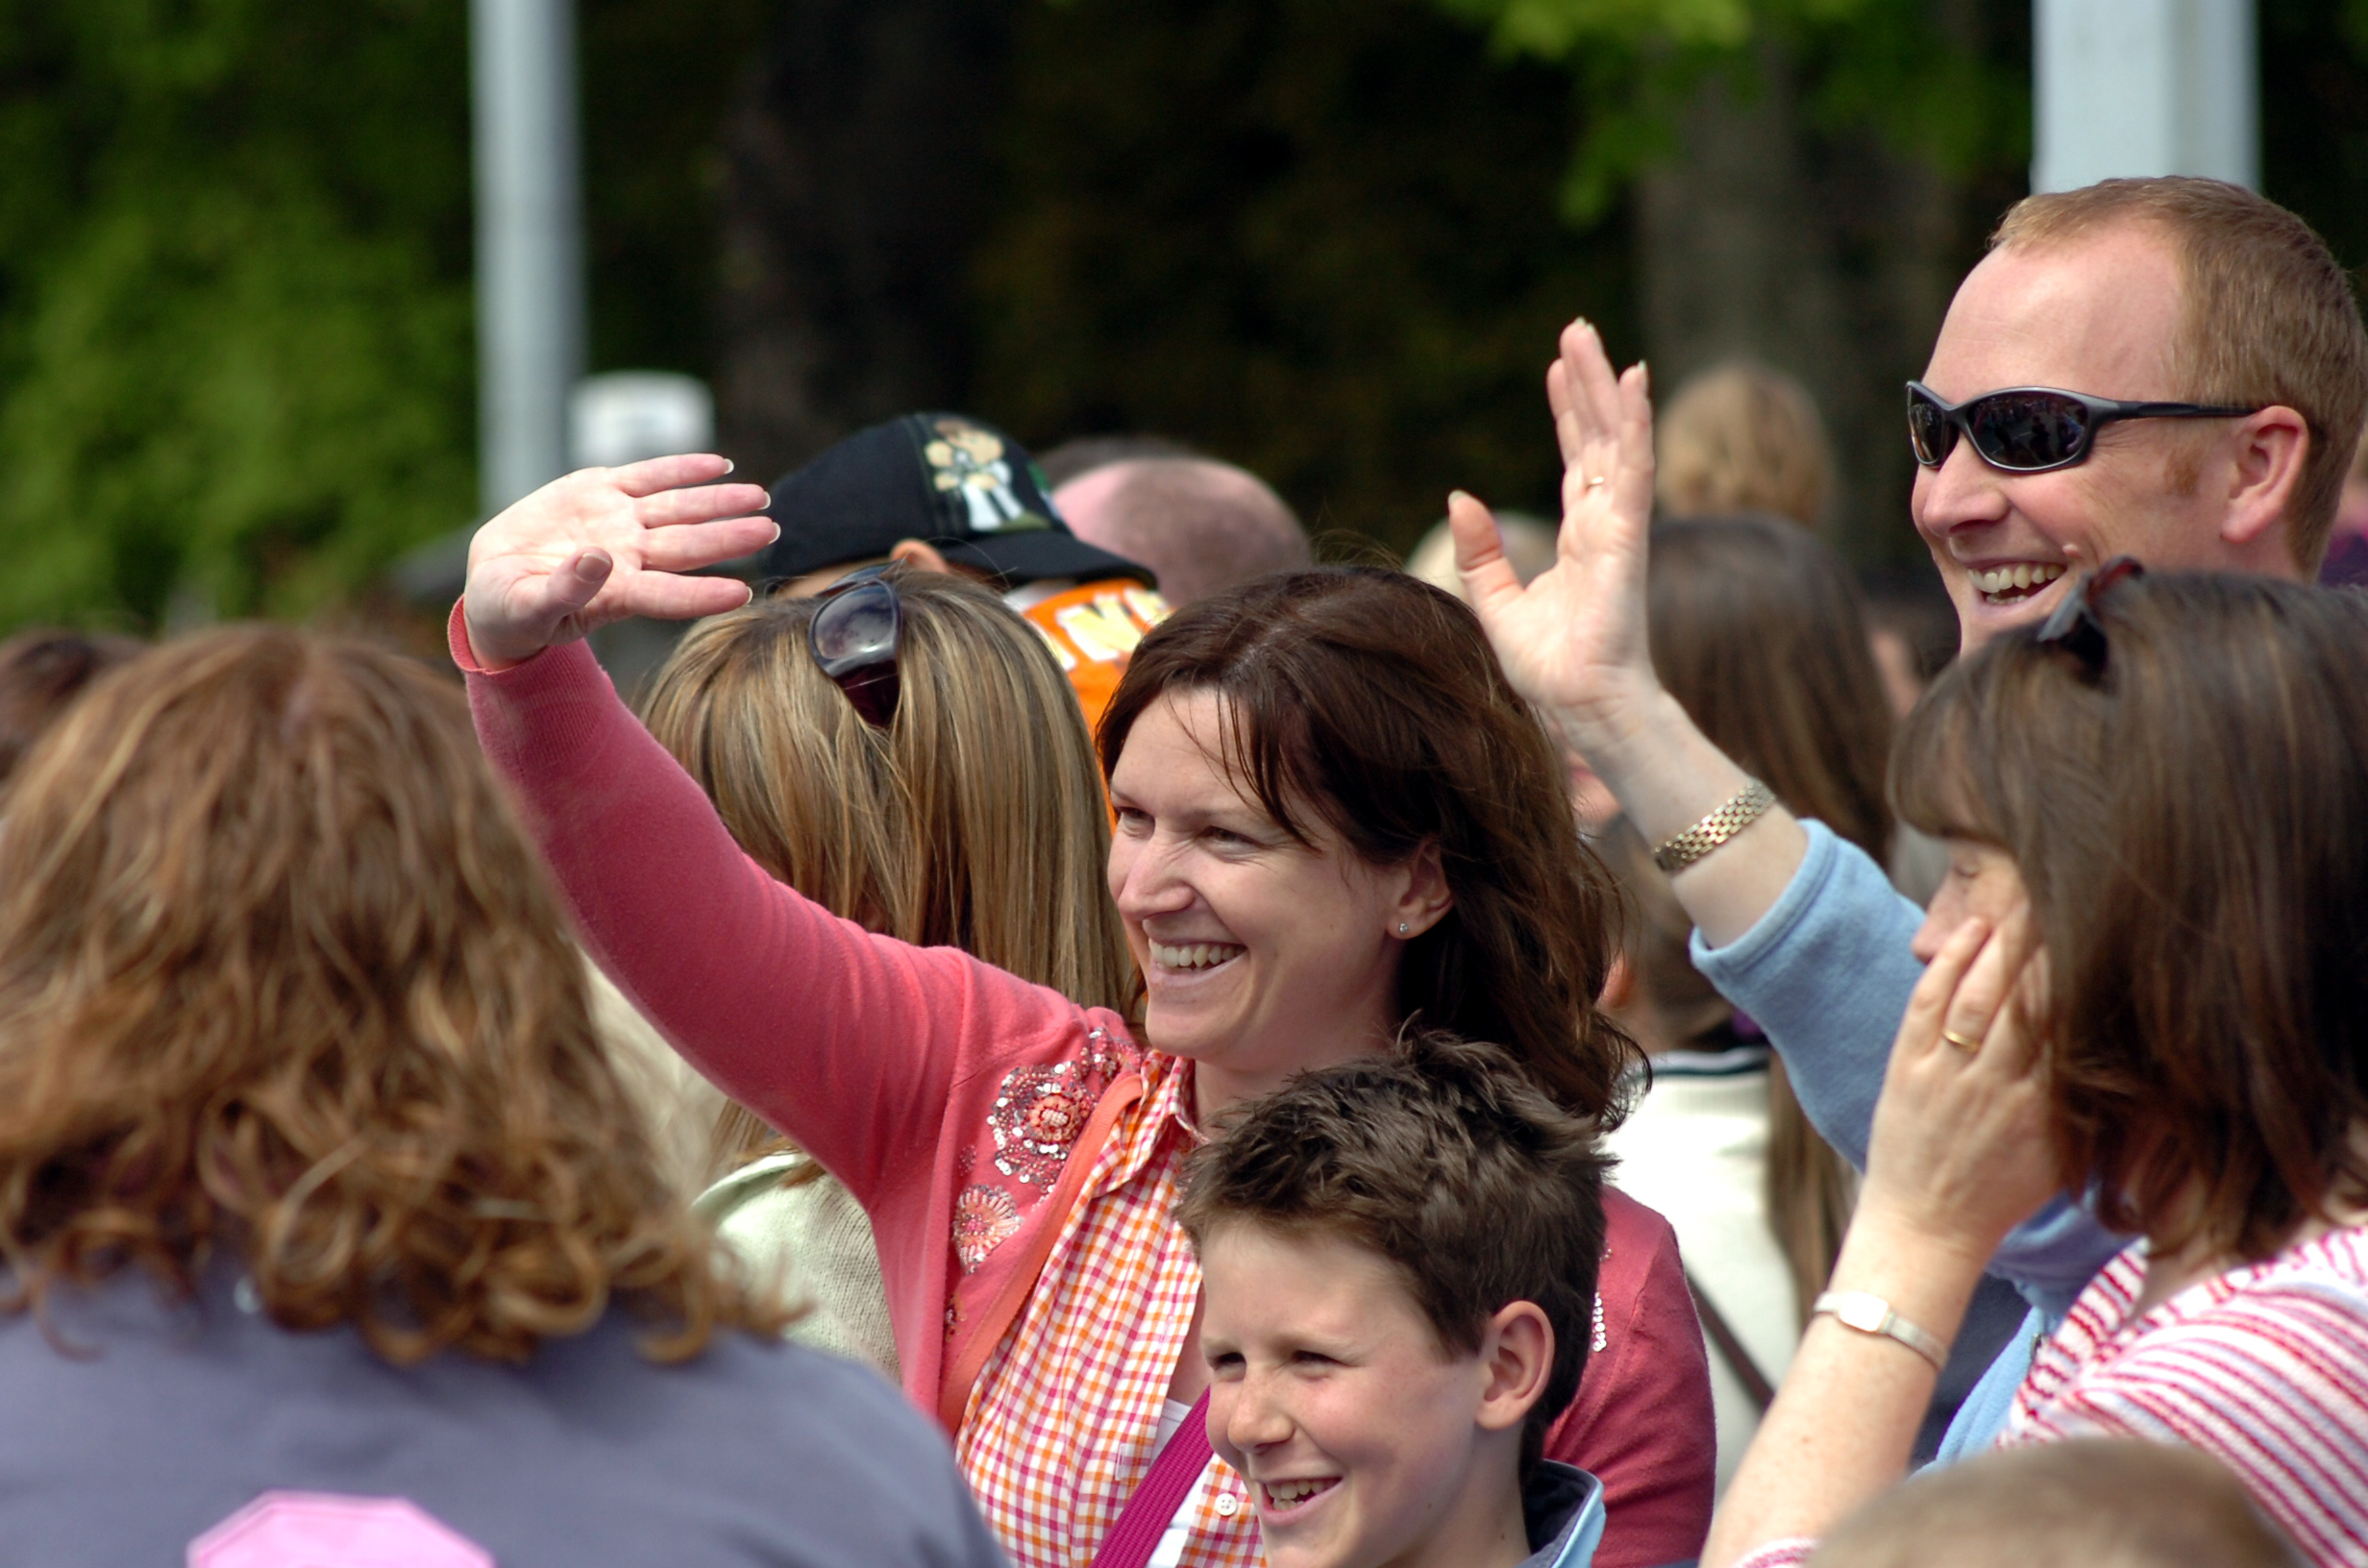 VIDEO: Town turns out to see Jasmine crowned 150th Royal May Queen